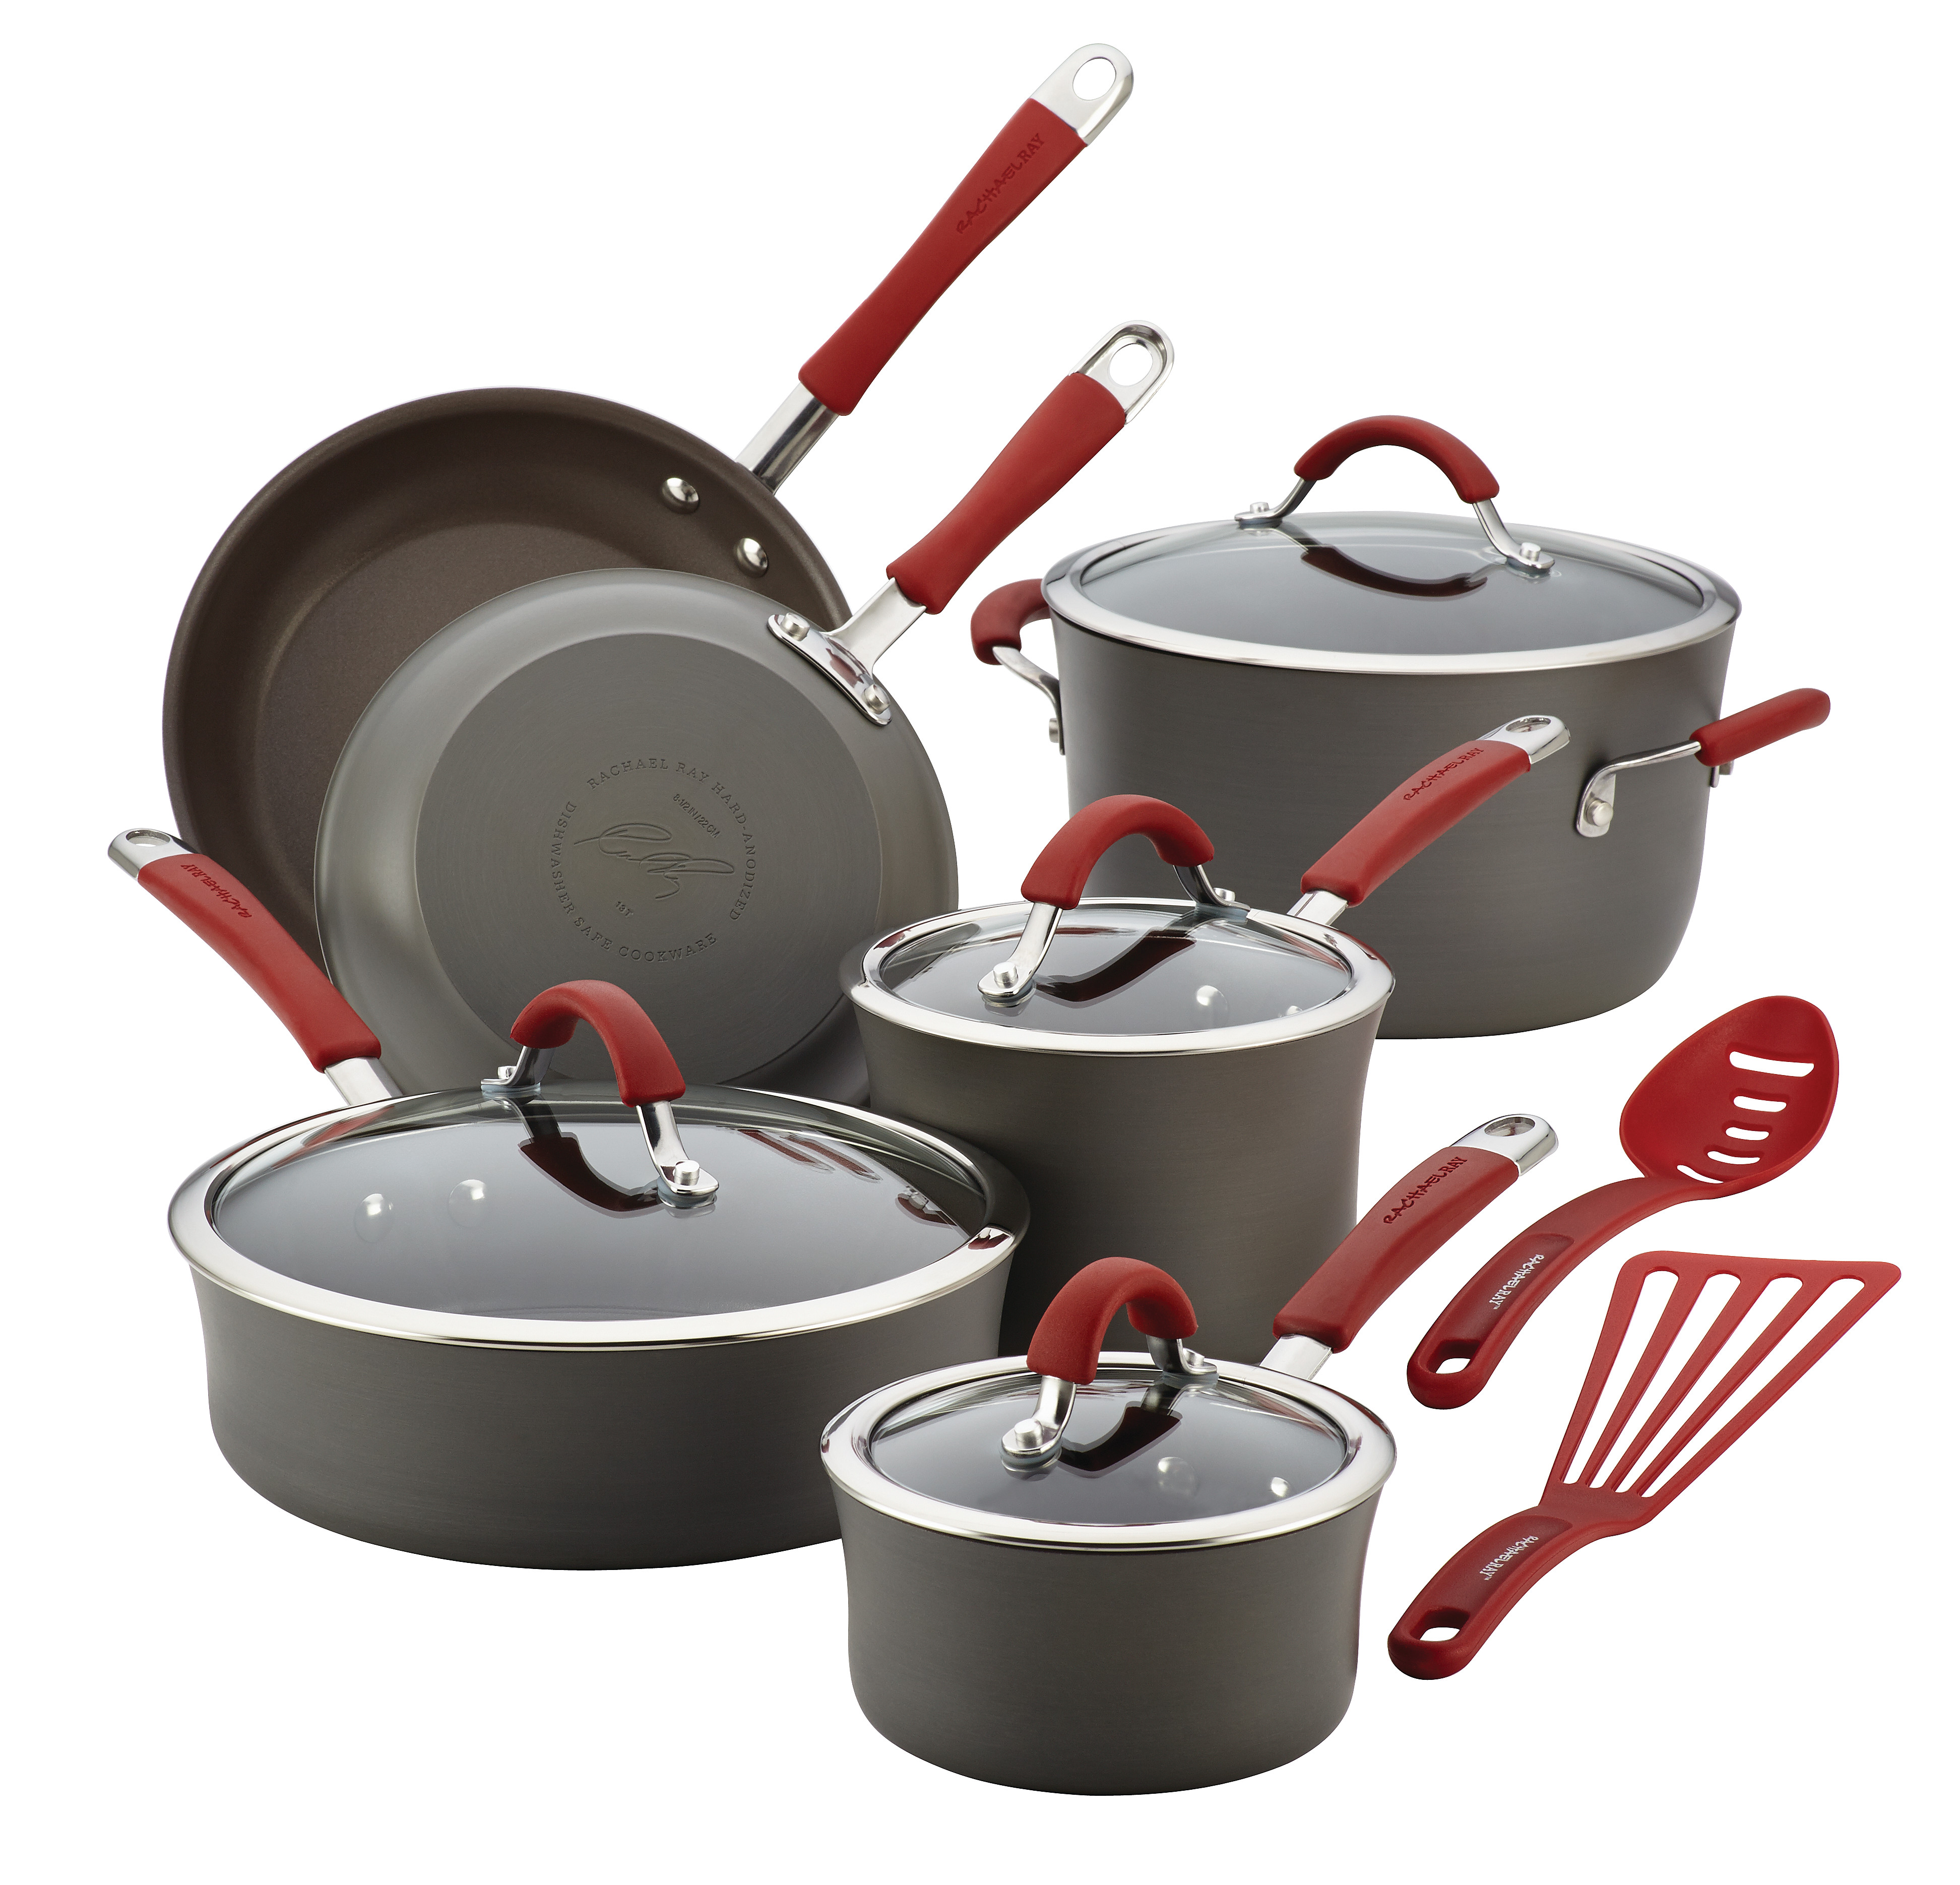 Rachael Ray(r) Cucina Hard-Anodized Aluminum Nonstick Cookware Set, 12-Piece, Gray, Cranberry Red Handles